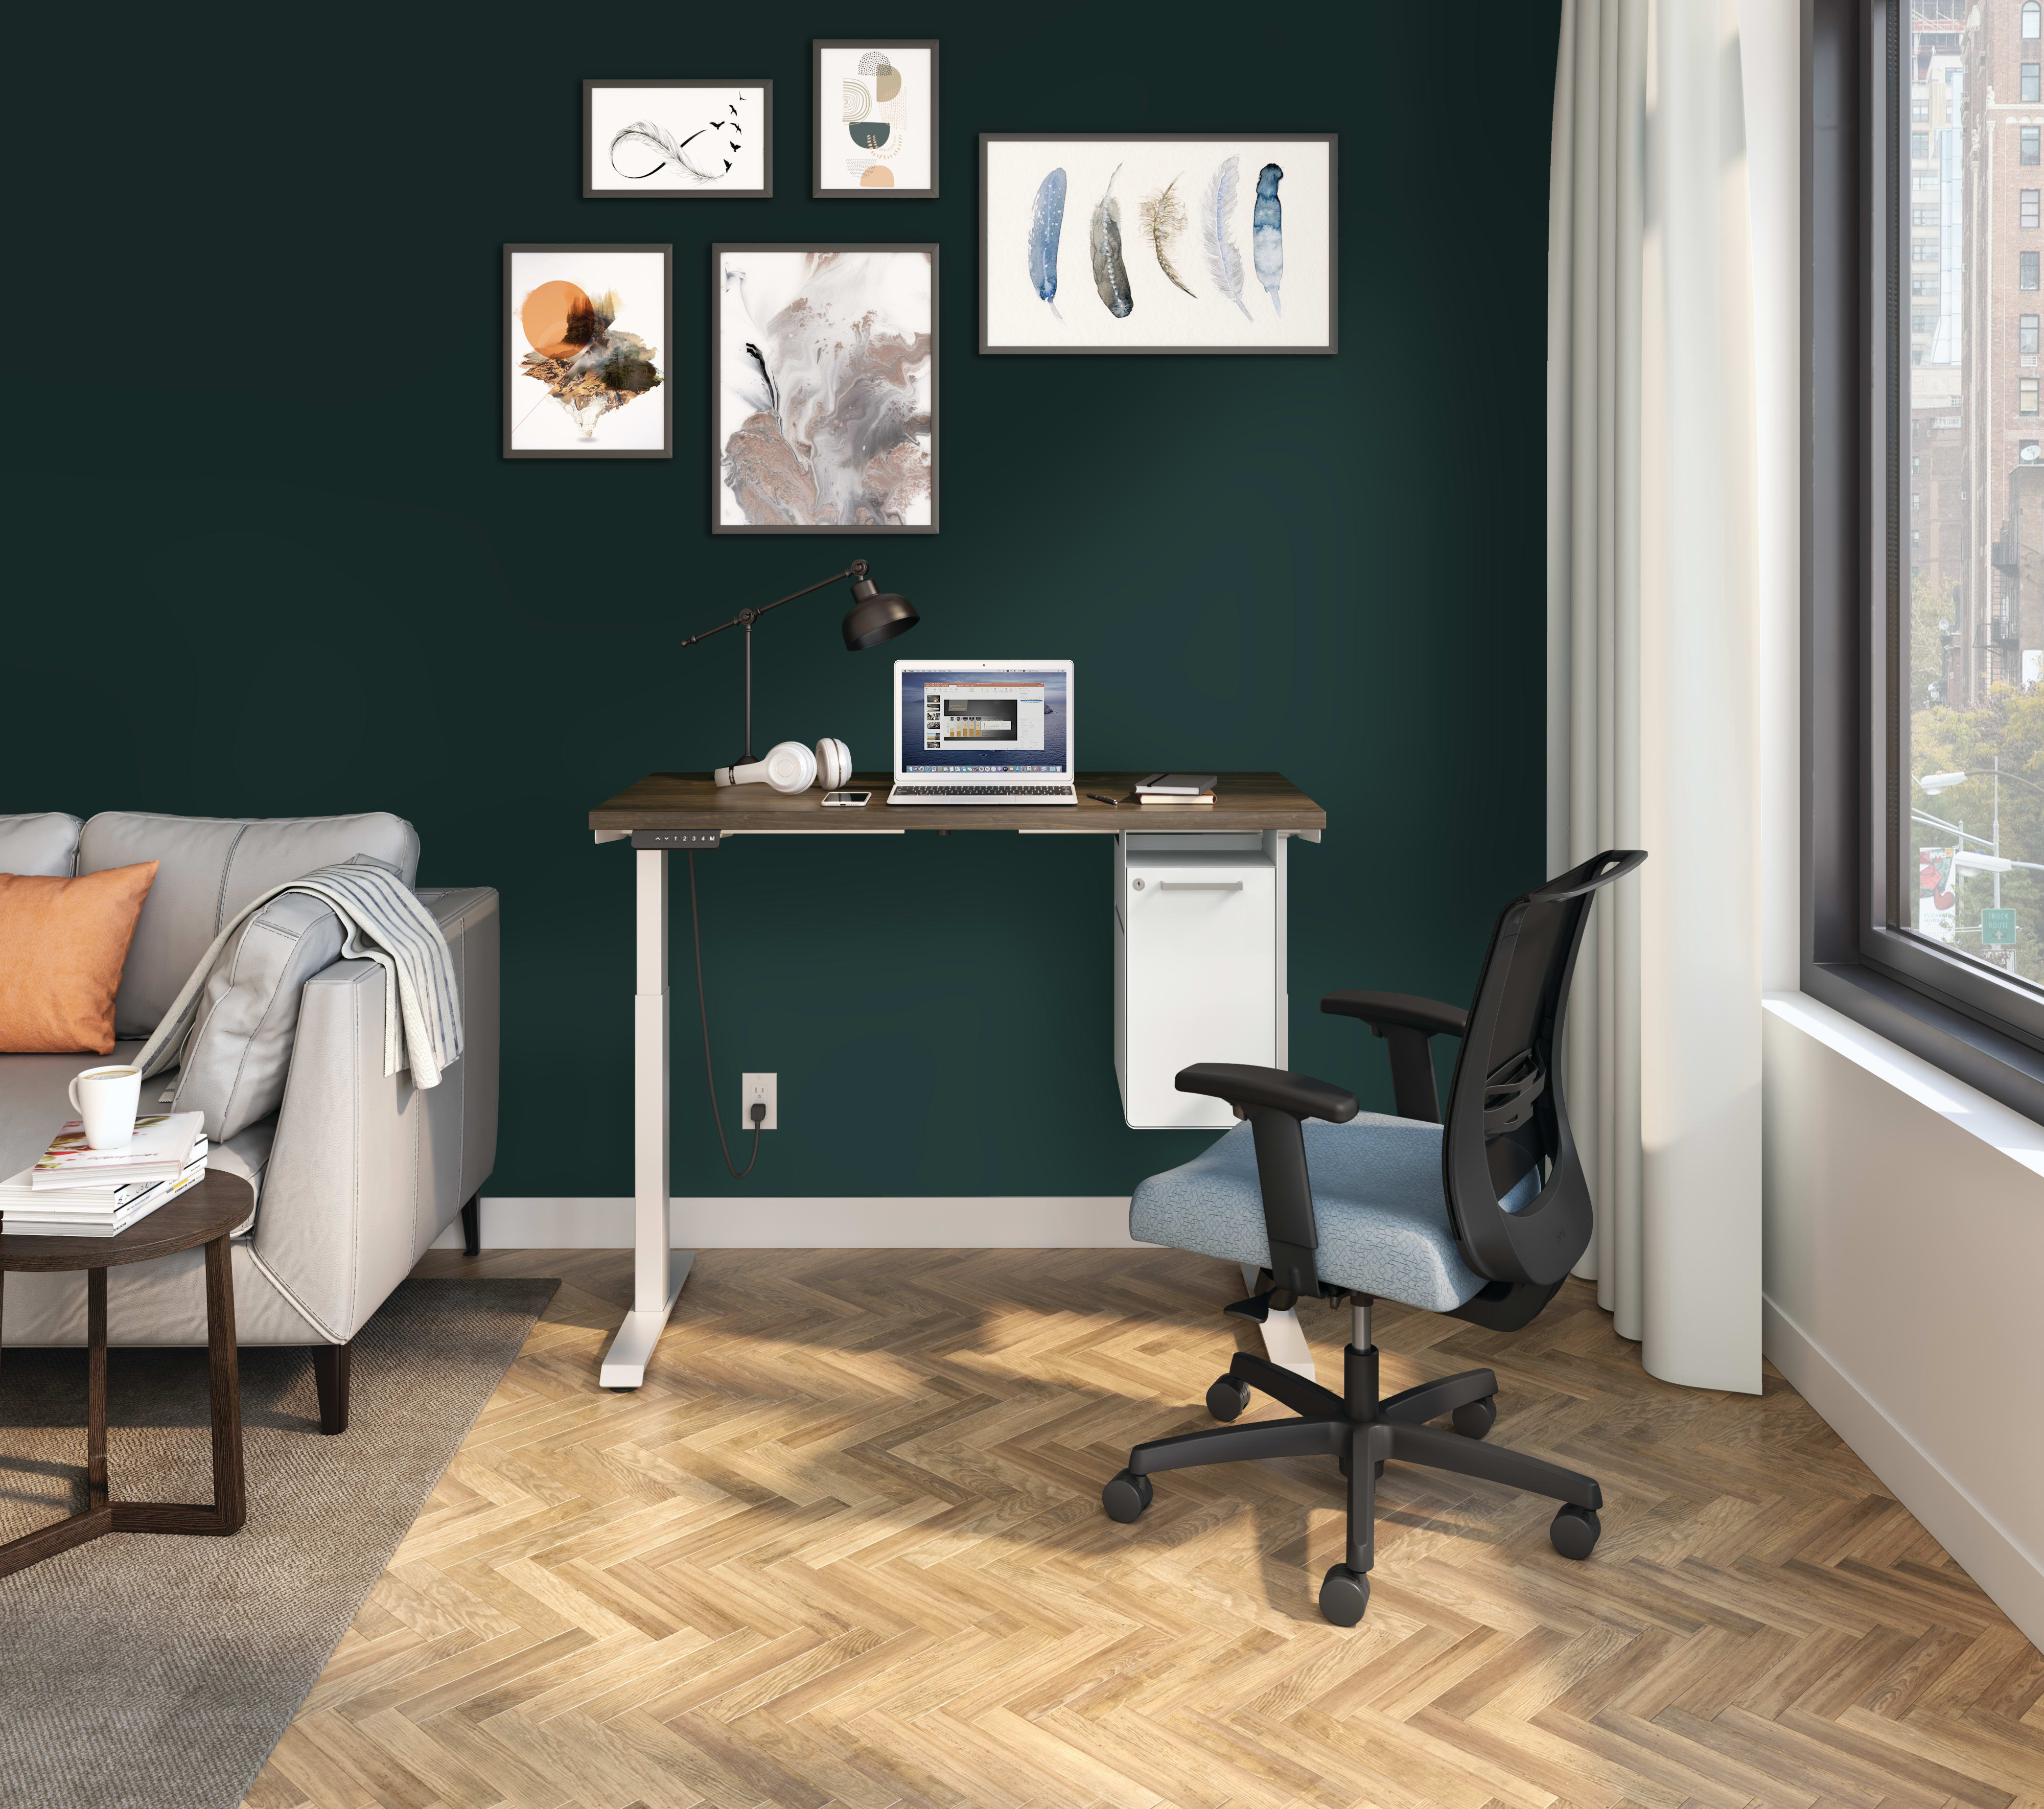 Coordinate Height Adjustable Base with Coze Worksurface and Fuse Undermount Storage and Convergence Task Chair.